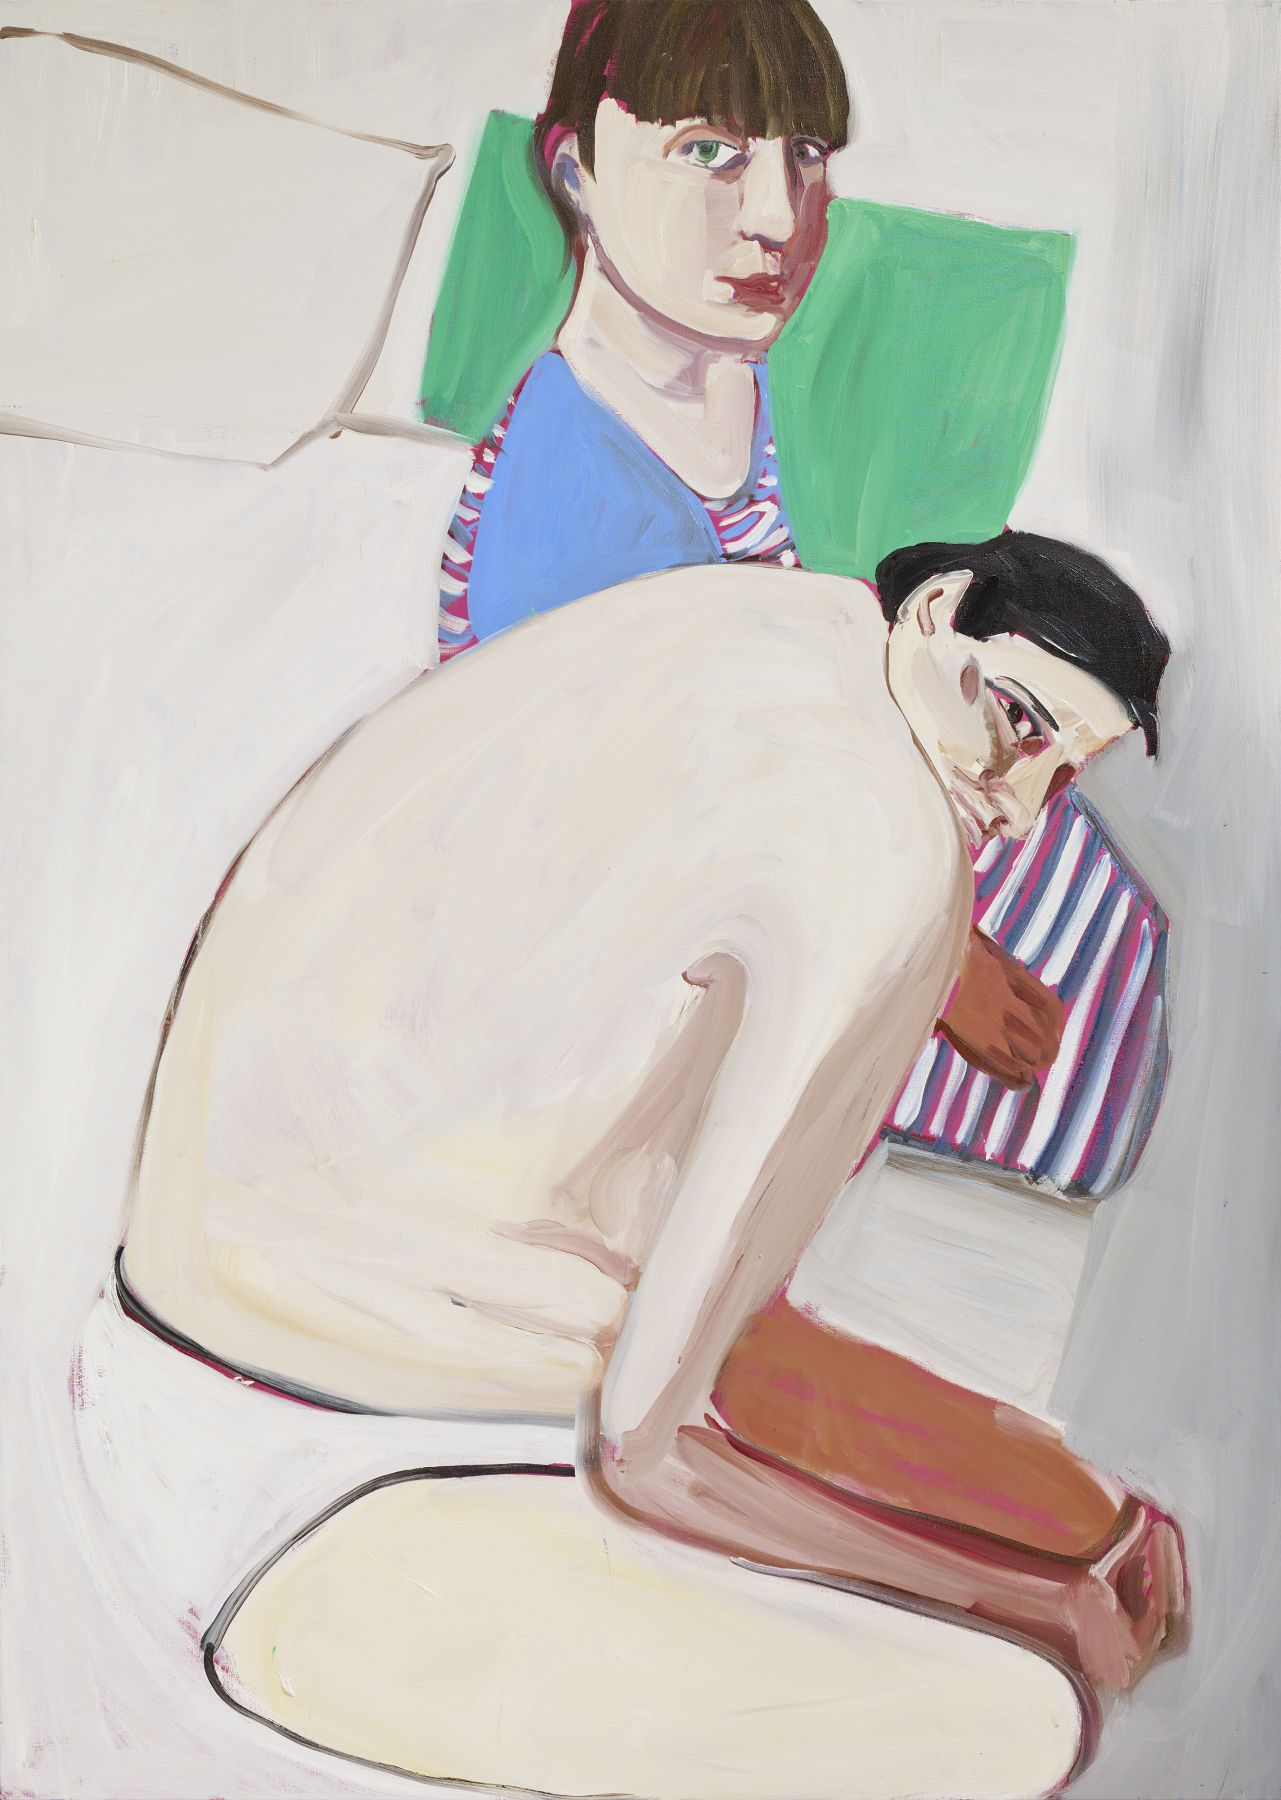 CHANTAL JOFFE, The Squid and the Whale II, 2017